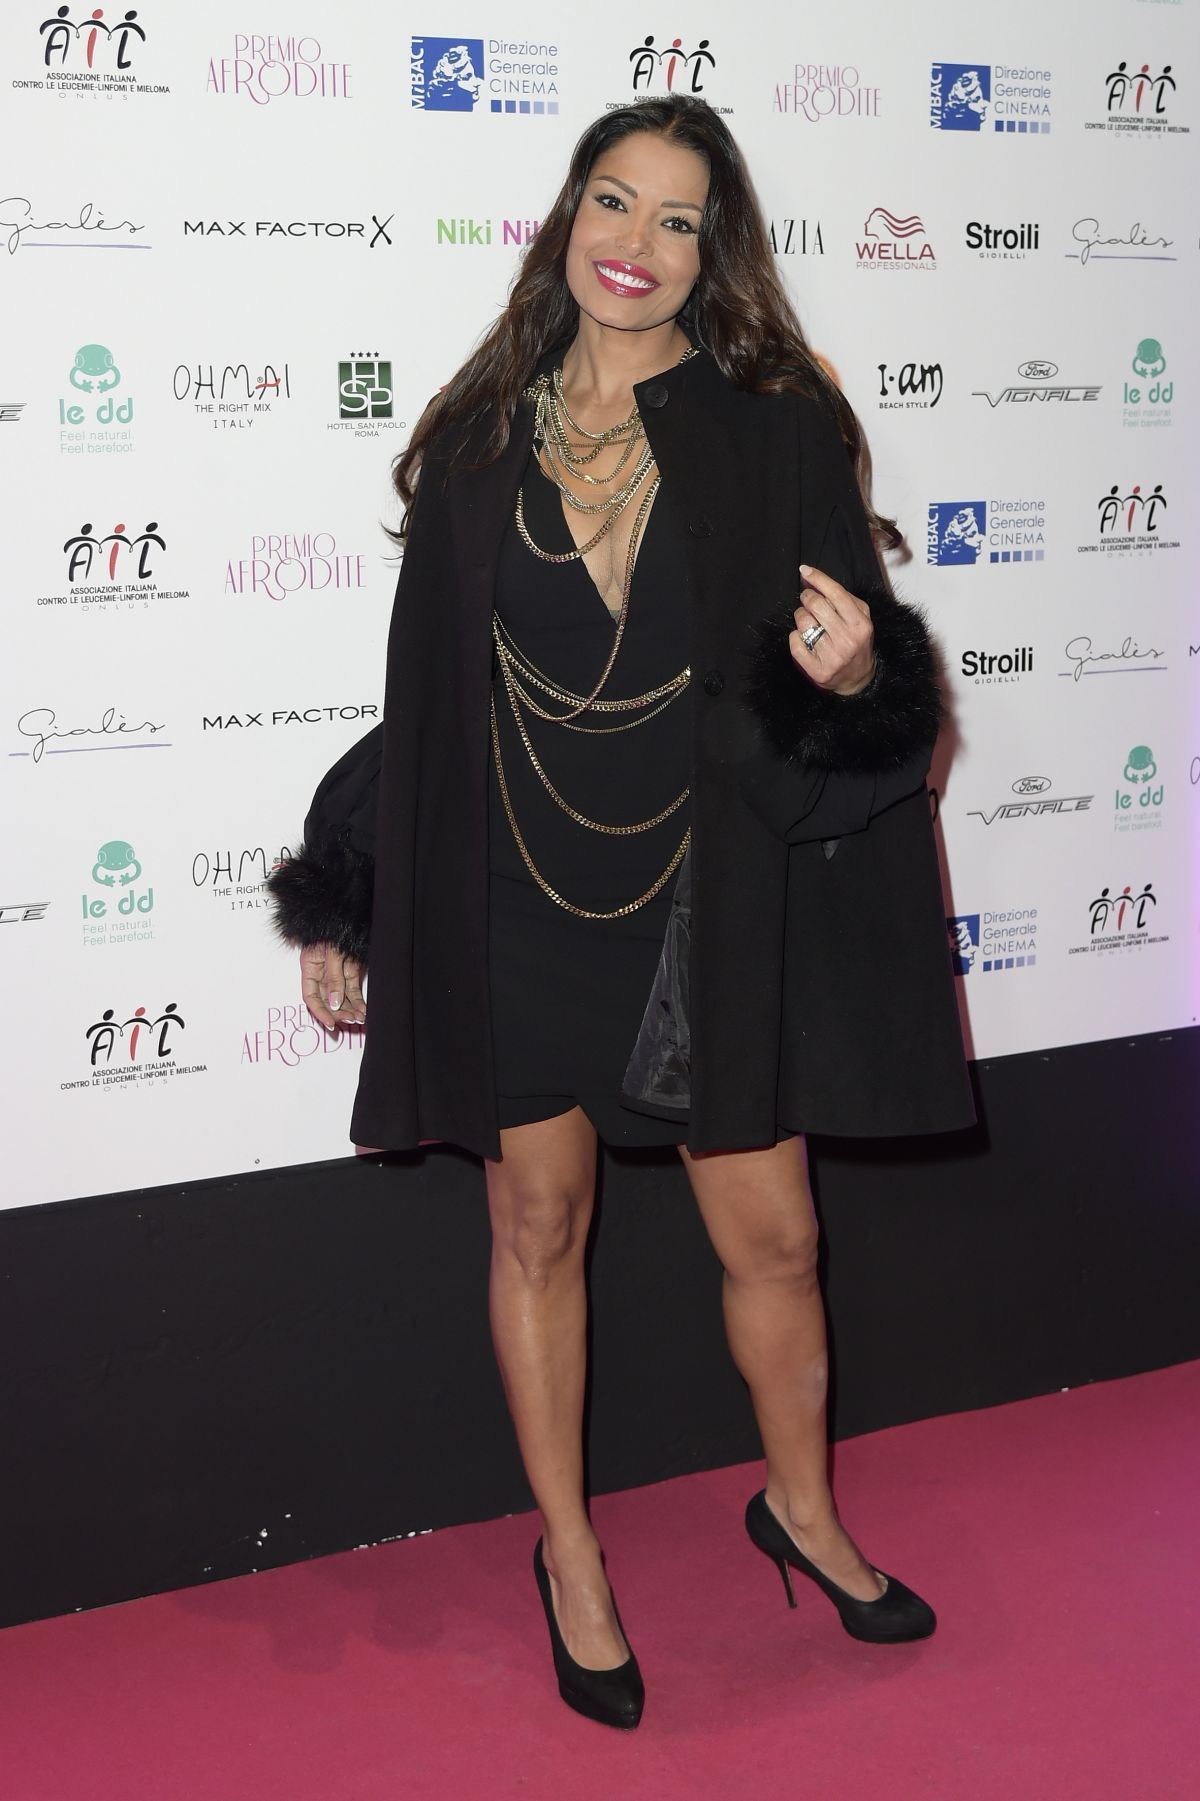 CAROLINA MARCONI at Premio Afrodite in Rome 01/13/2016